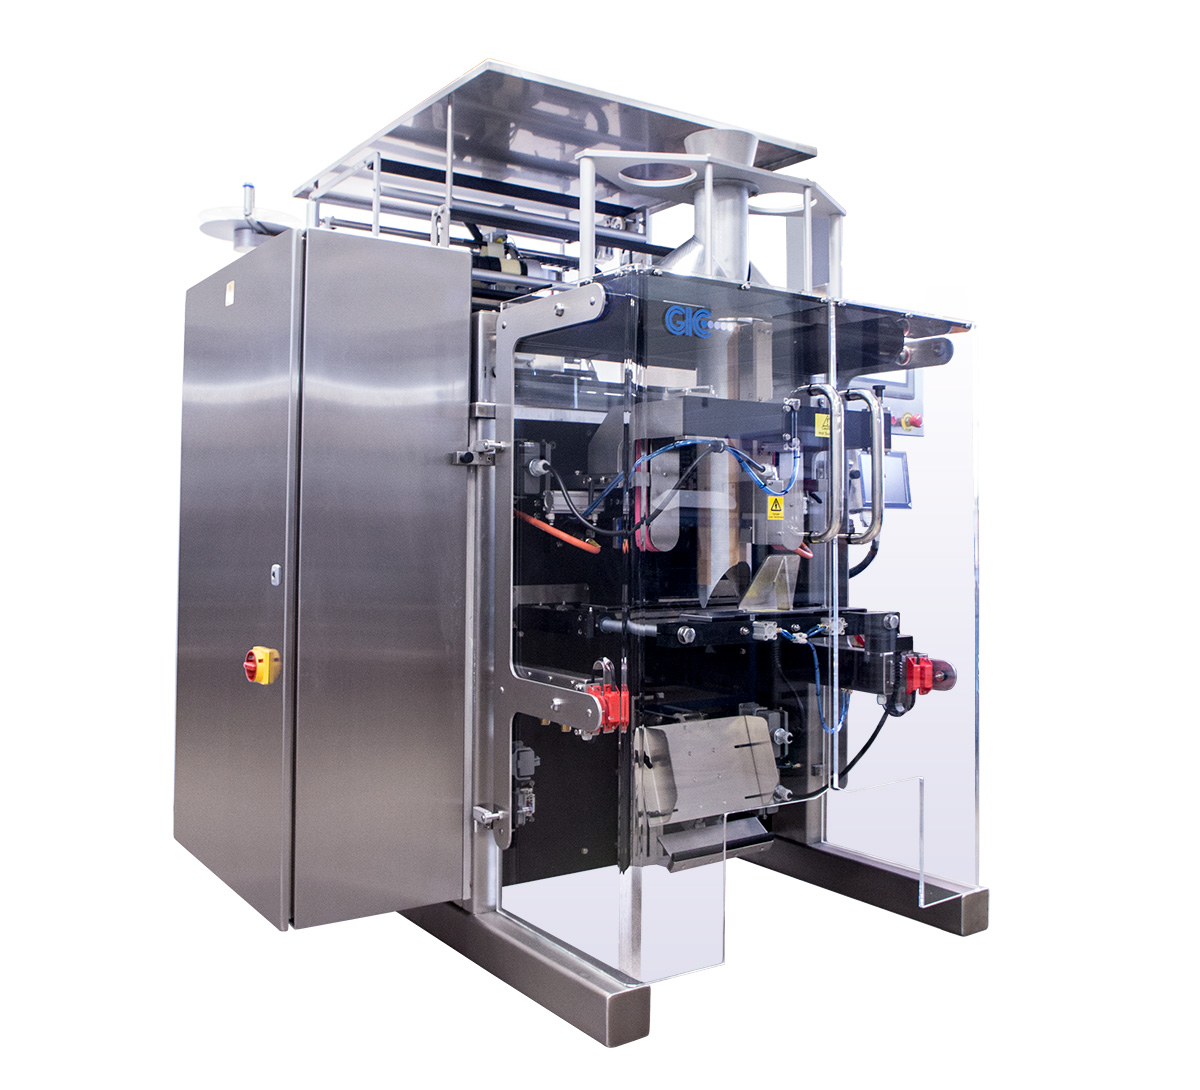 GIC 2100 Vertical Form Fill and Seal Machine